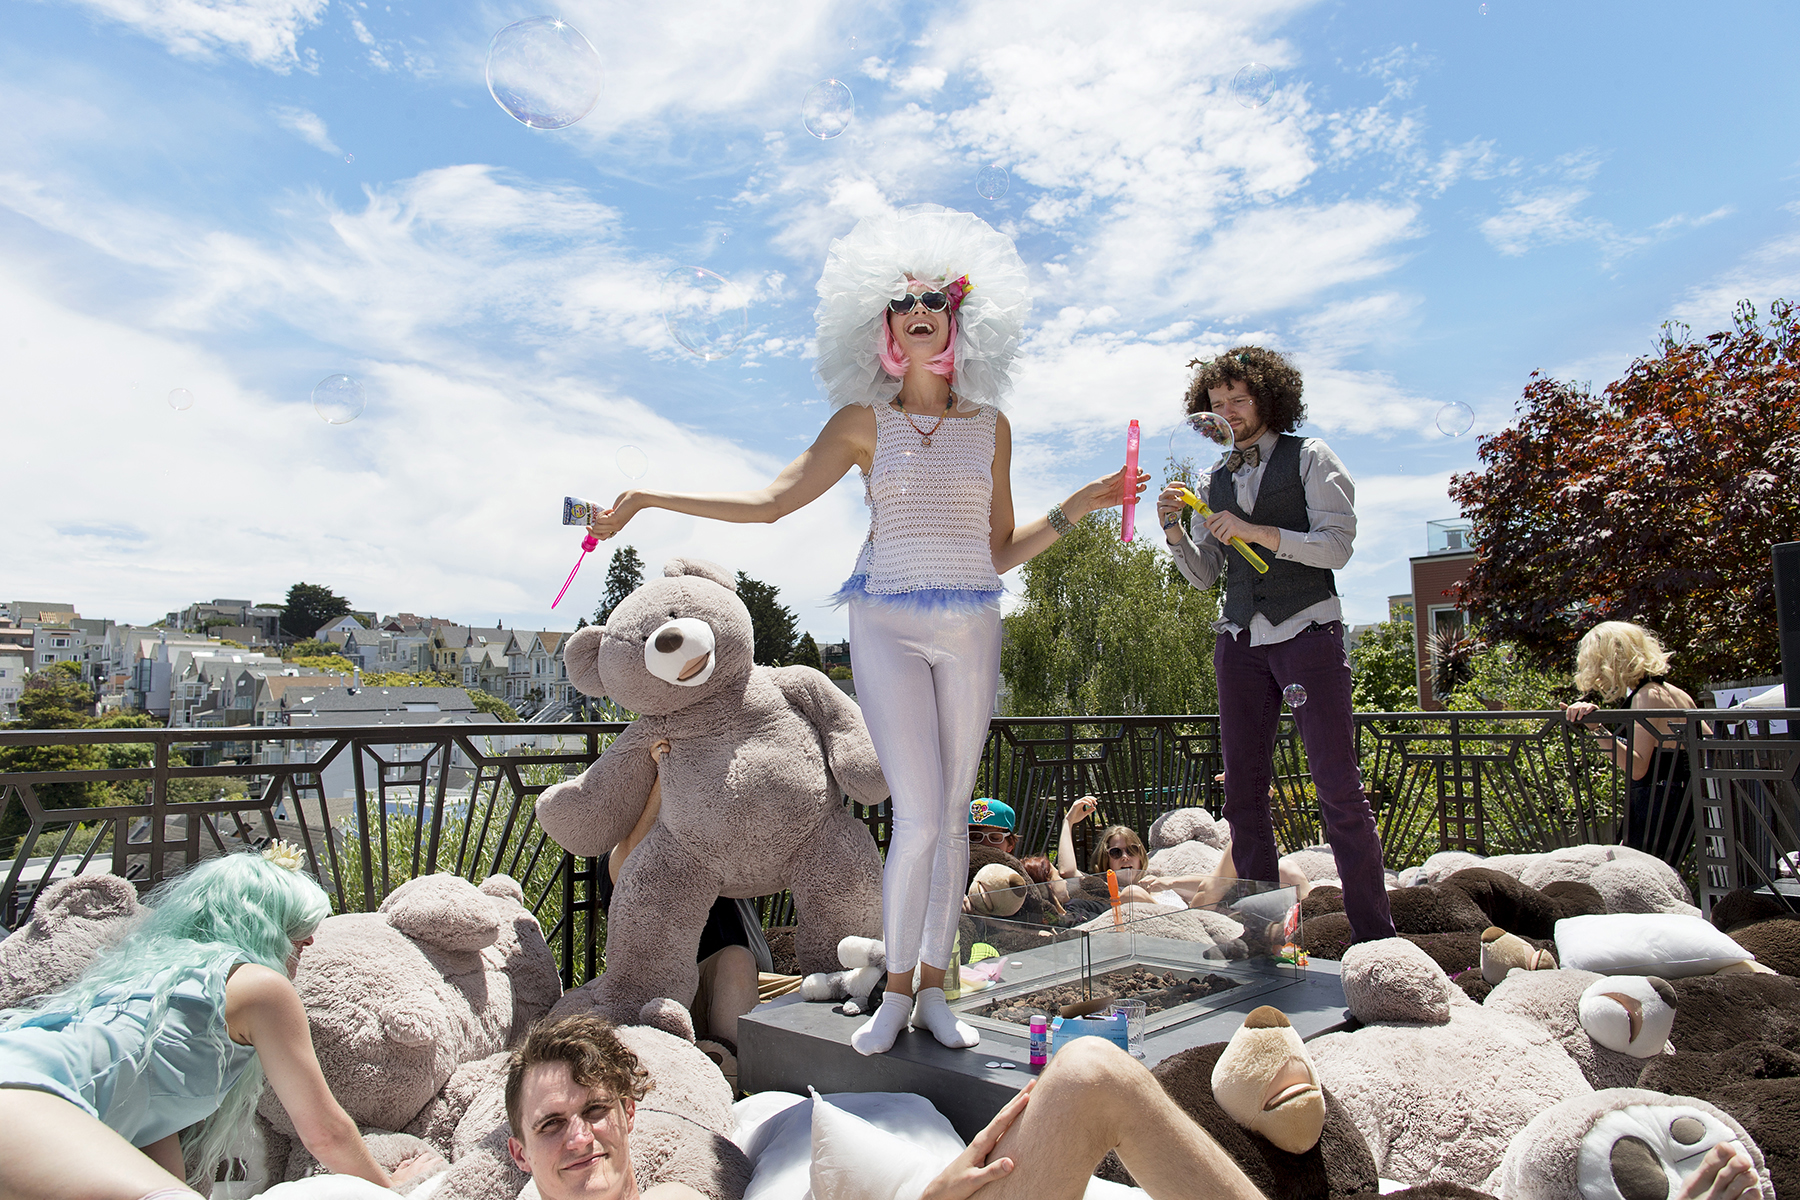 Emily Erickson (center) dances and blows bubbles during a fundraiser party for Disco Chateau, a Burning Man camp, held at the home of a technology entrepreneur in San Francisco, Calif., on Saturday, June 27, 2015. The camp members were raising money to buy more stuffed animals to bring to Burning Man. Their goal was to create a large {quote}cuddle puddle{quote} where people could cuddle with one another among stuffed animals at the annual festival. Participating in Burning Man and the culture surrounding it has become very popular within the technology start-up community.